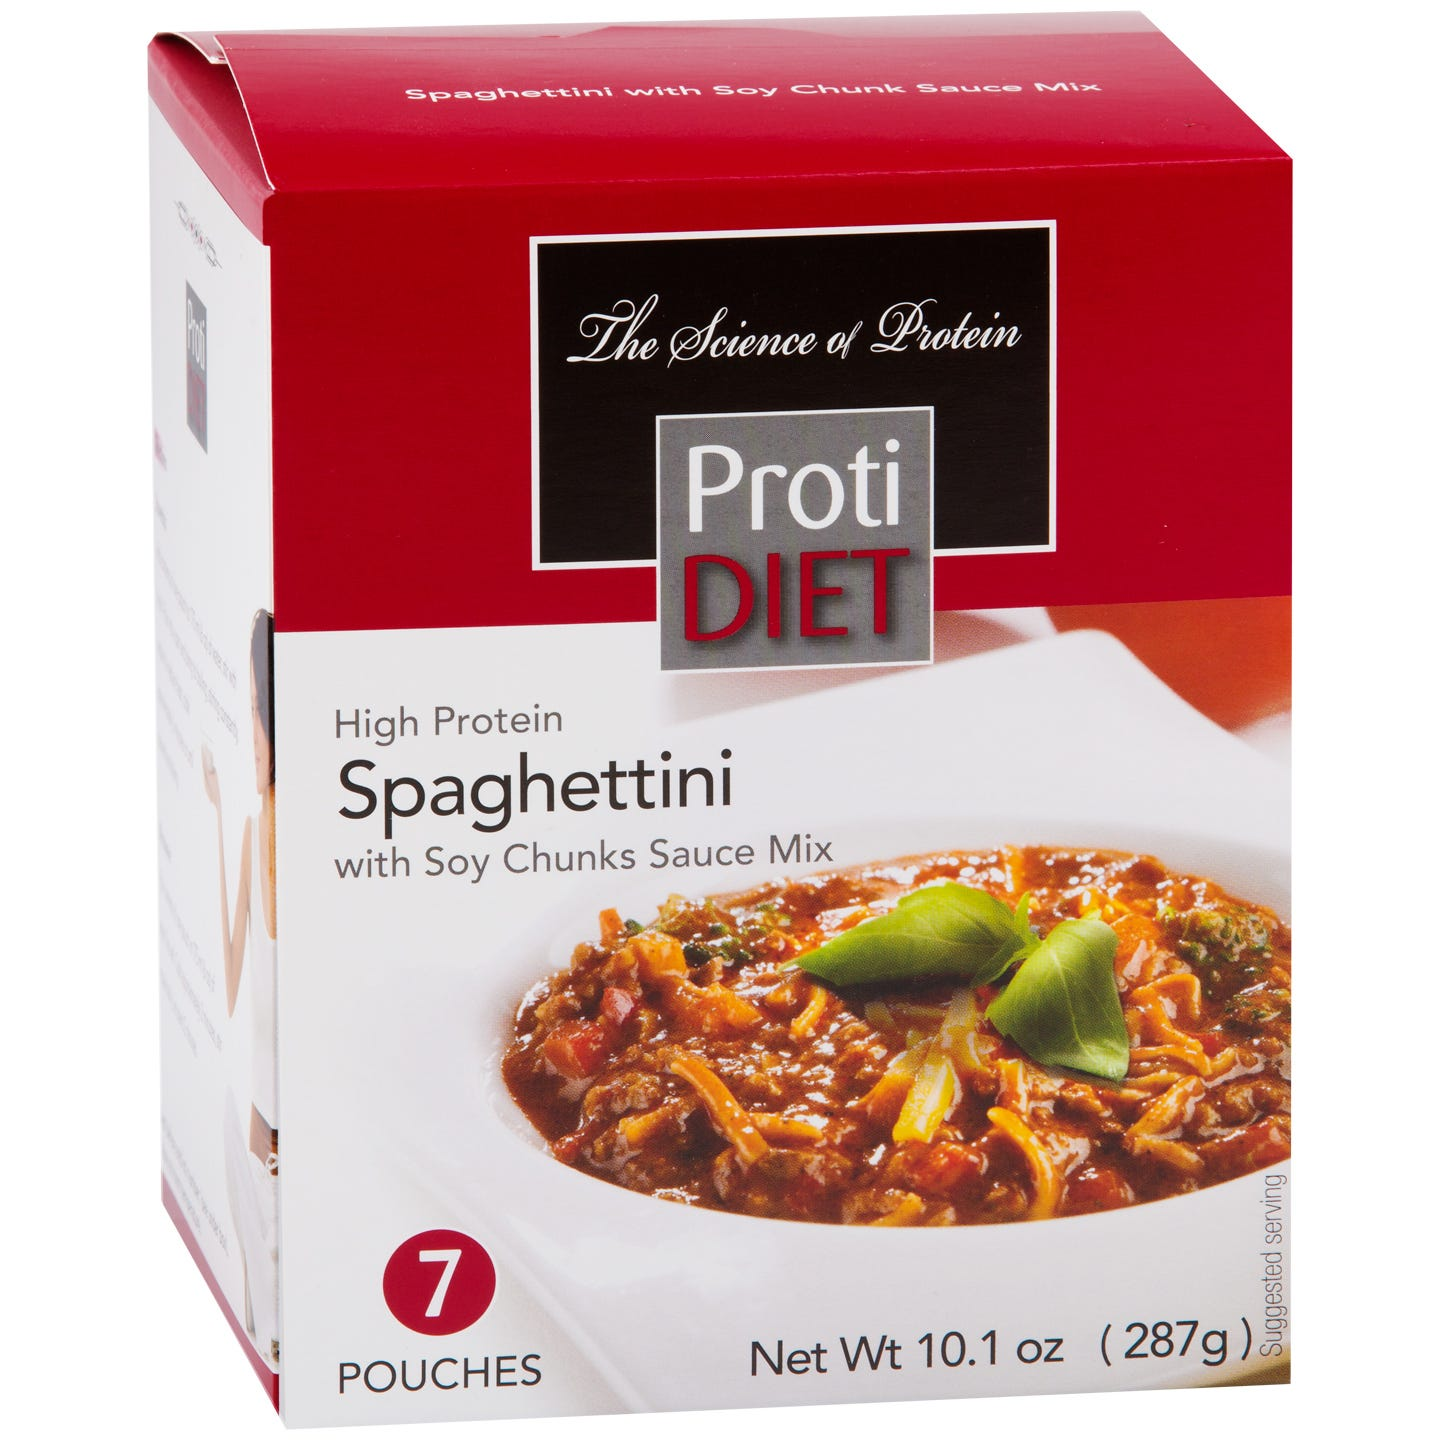 High Protein Spaghettini (7 ct) - ProtiDiet - Rapid Diet Weight Loss Products Shop